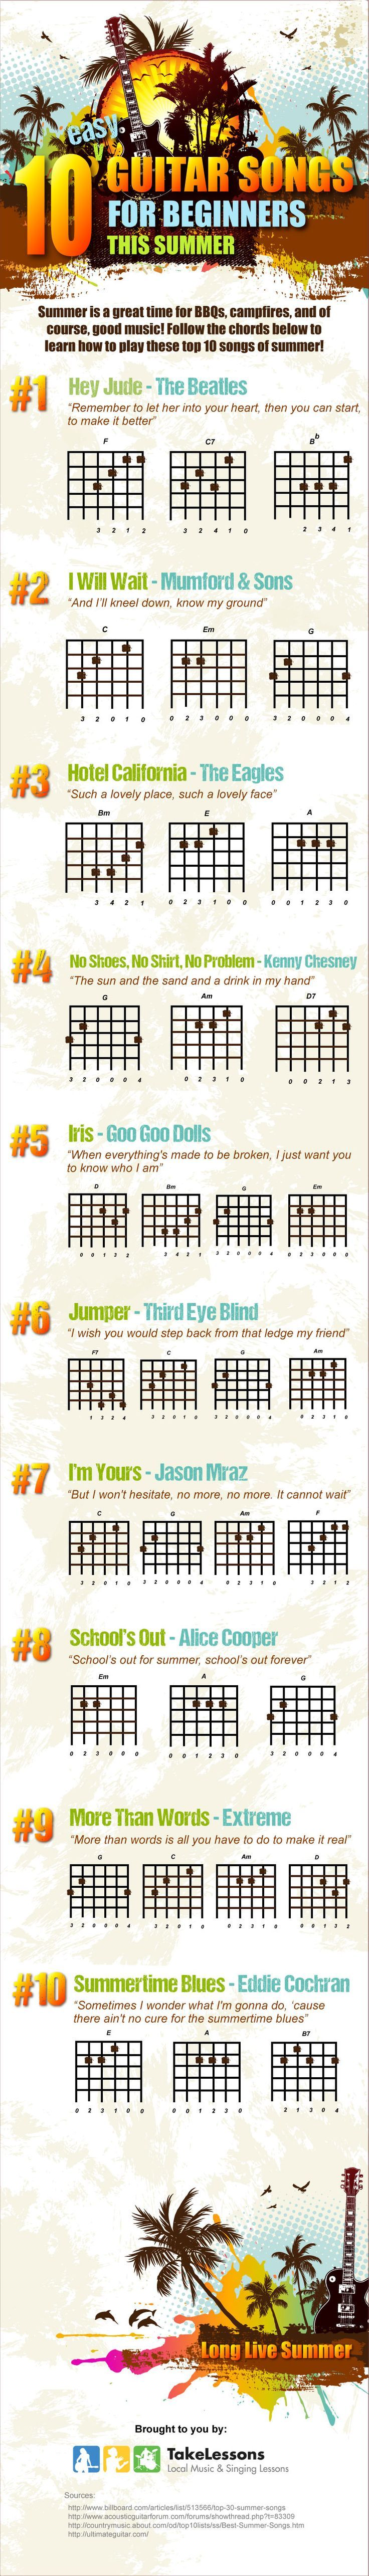 cool guitar licks - Learn How to Play Guitar Like a Pro in ...